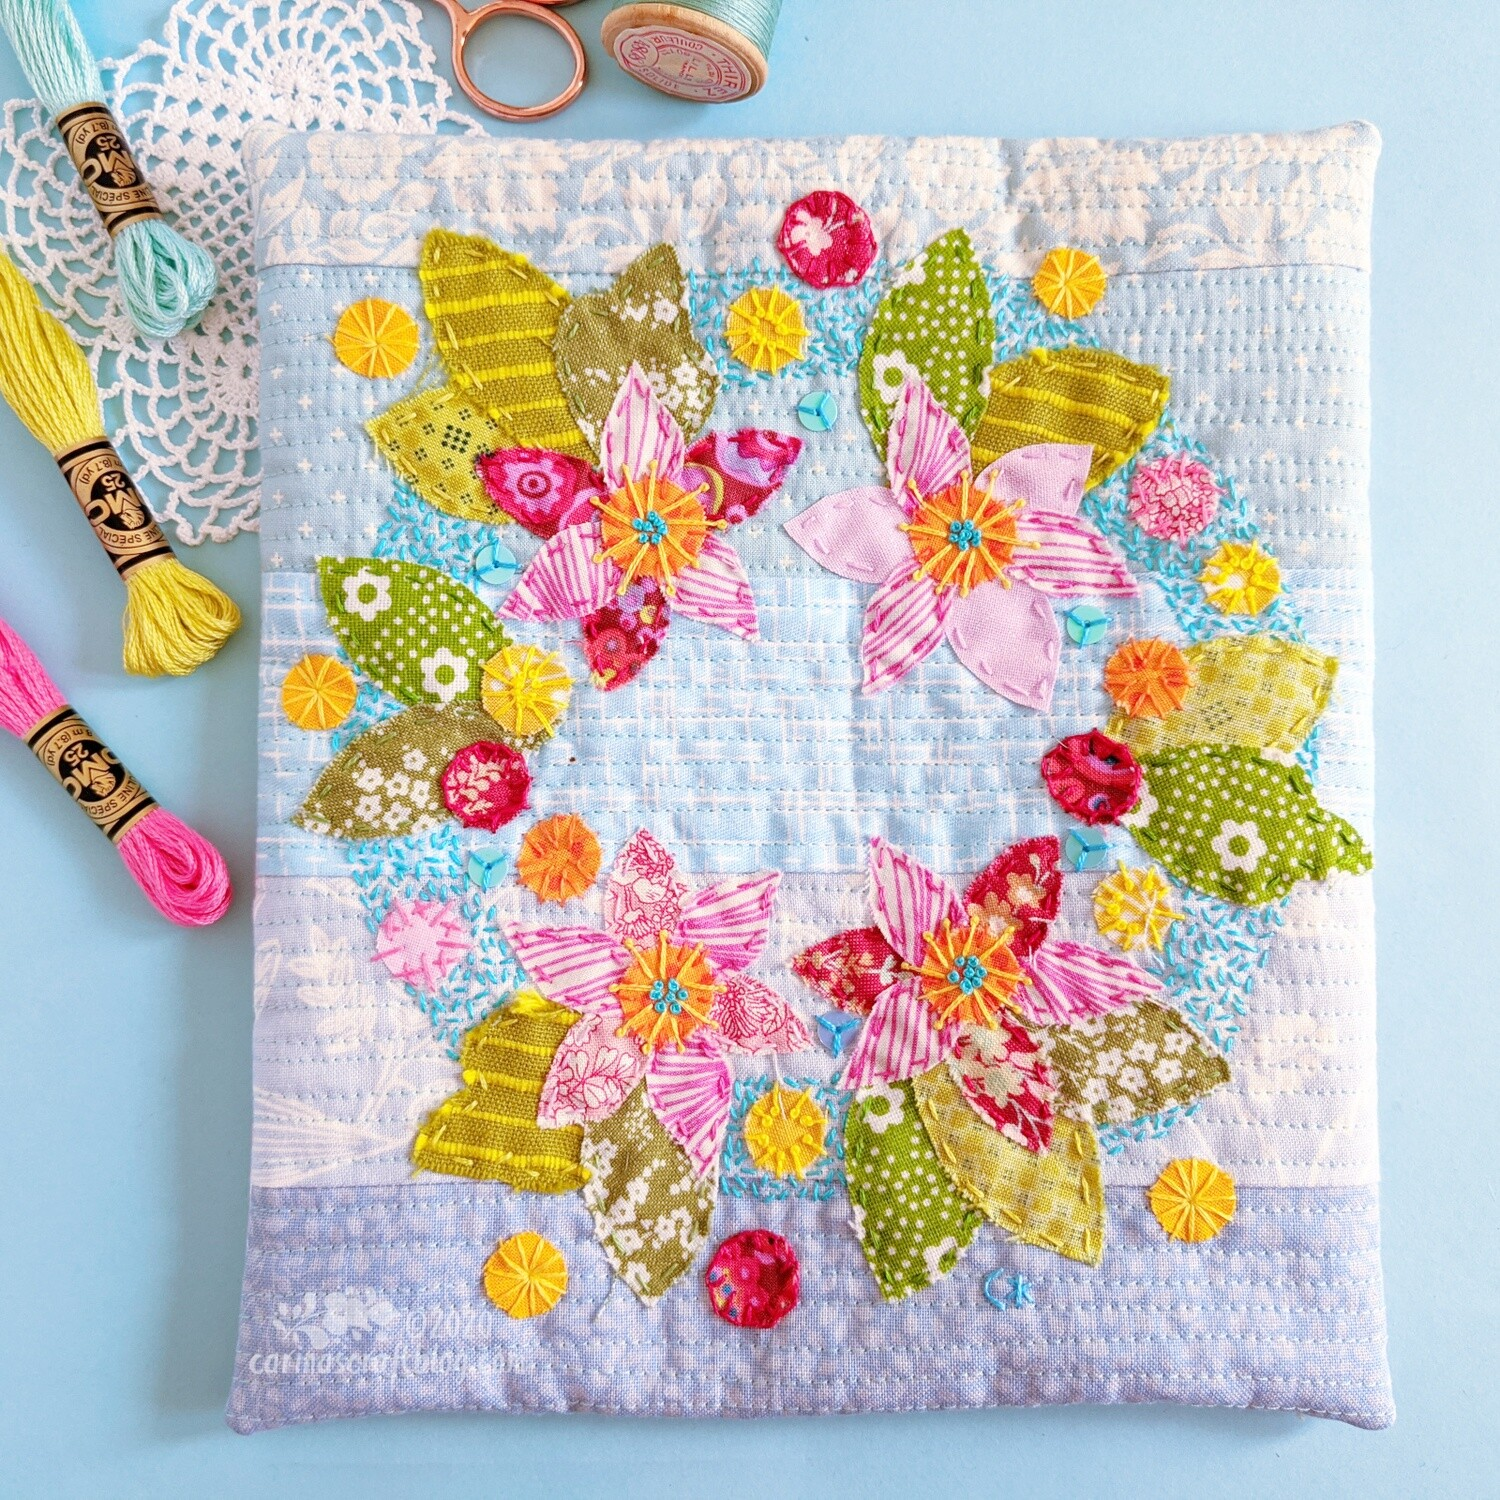 Pink and green appliqué flower wall hanging